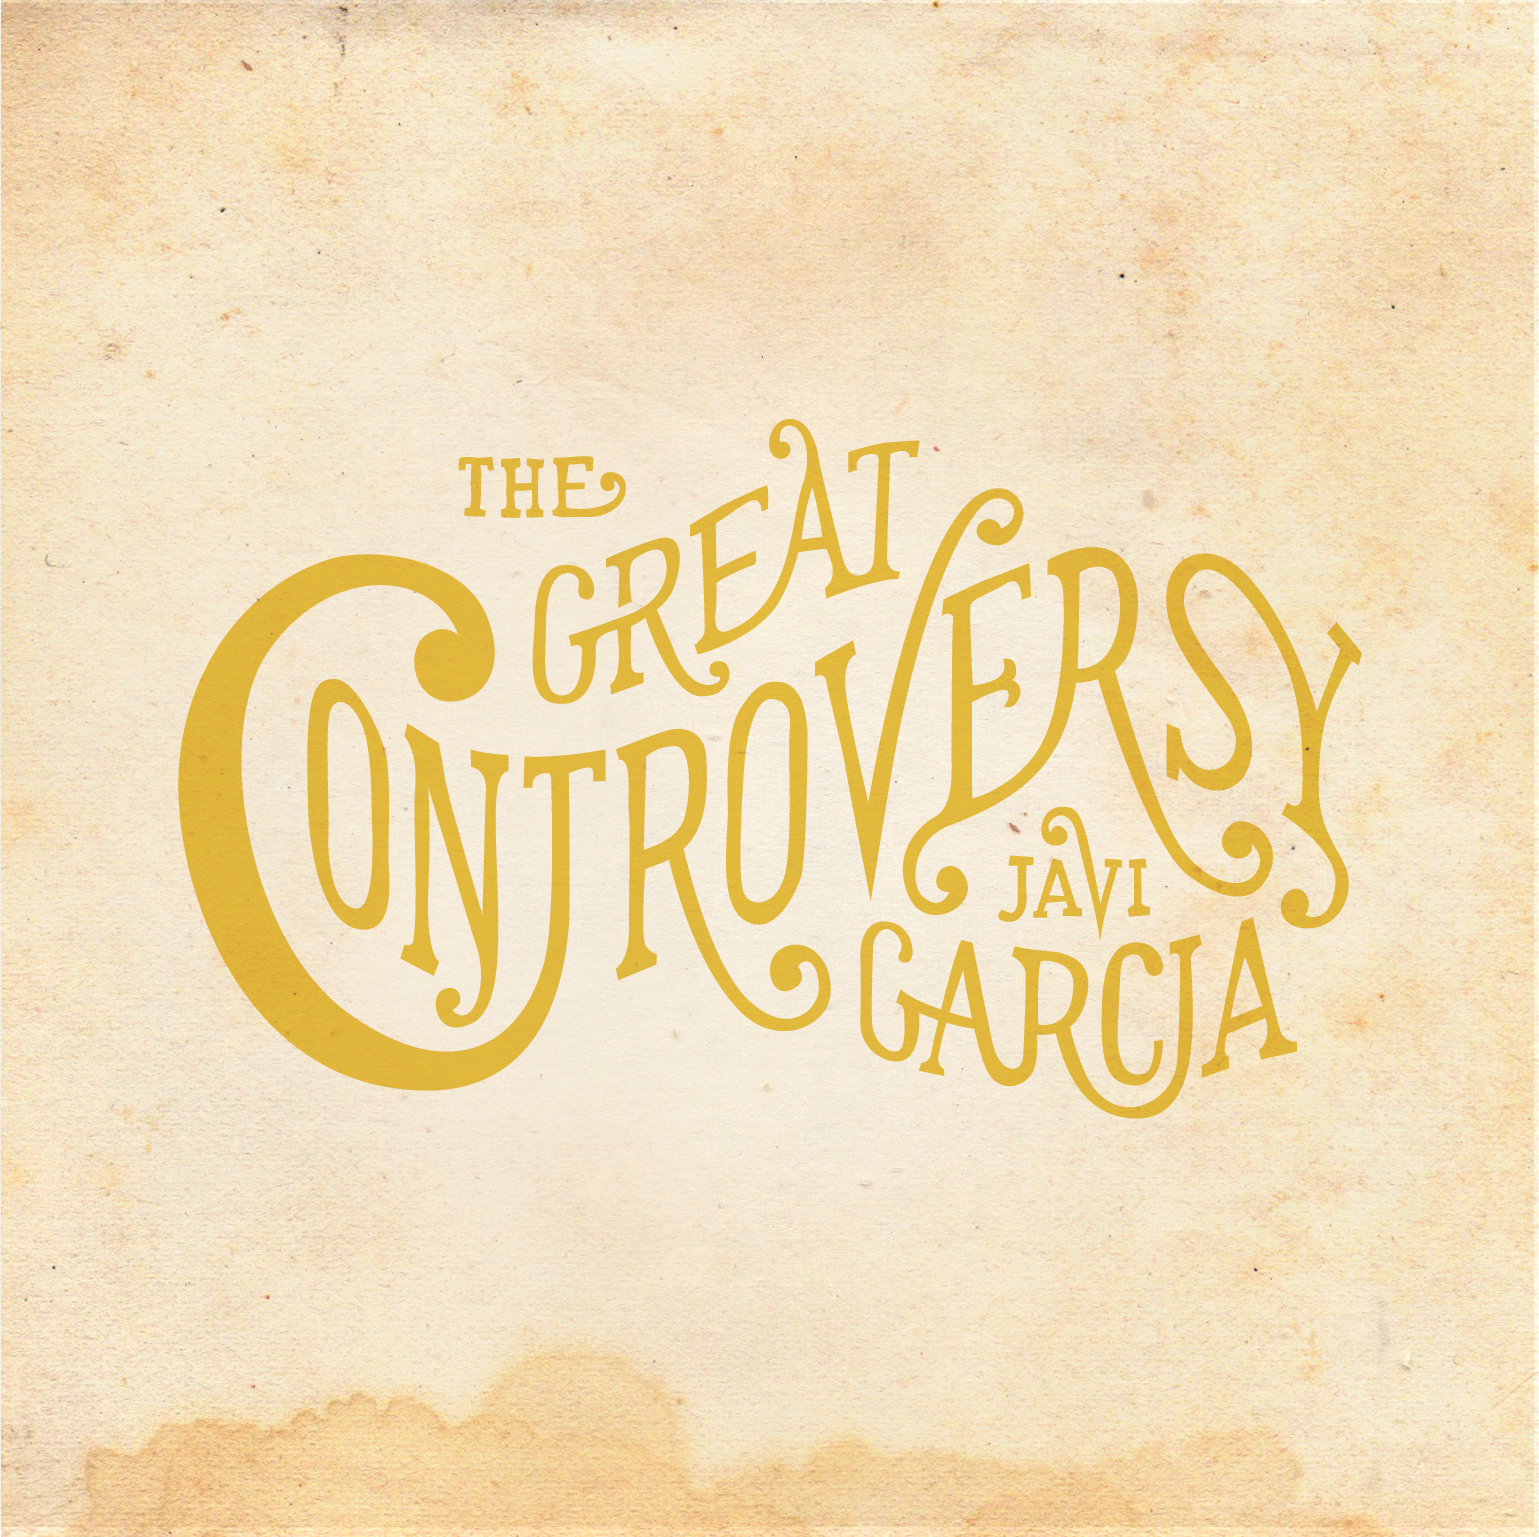 javi garcia the great controversy.jpg